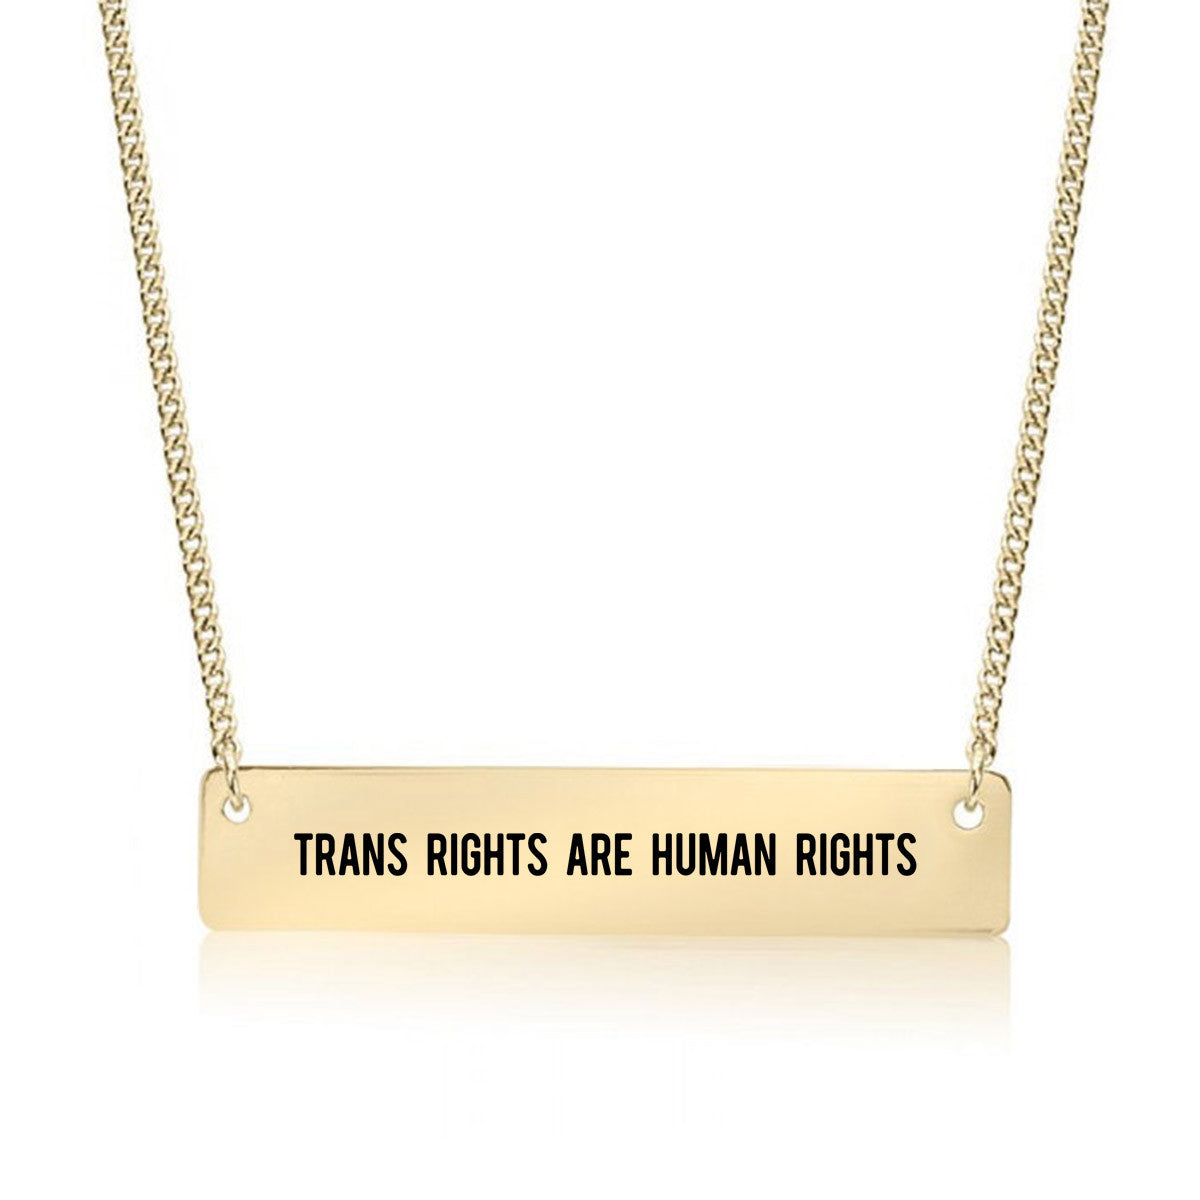 Trans Rights are Human Rights Gold / Silver Bar Necklace